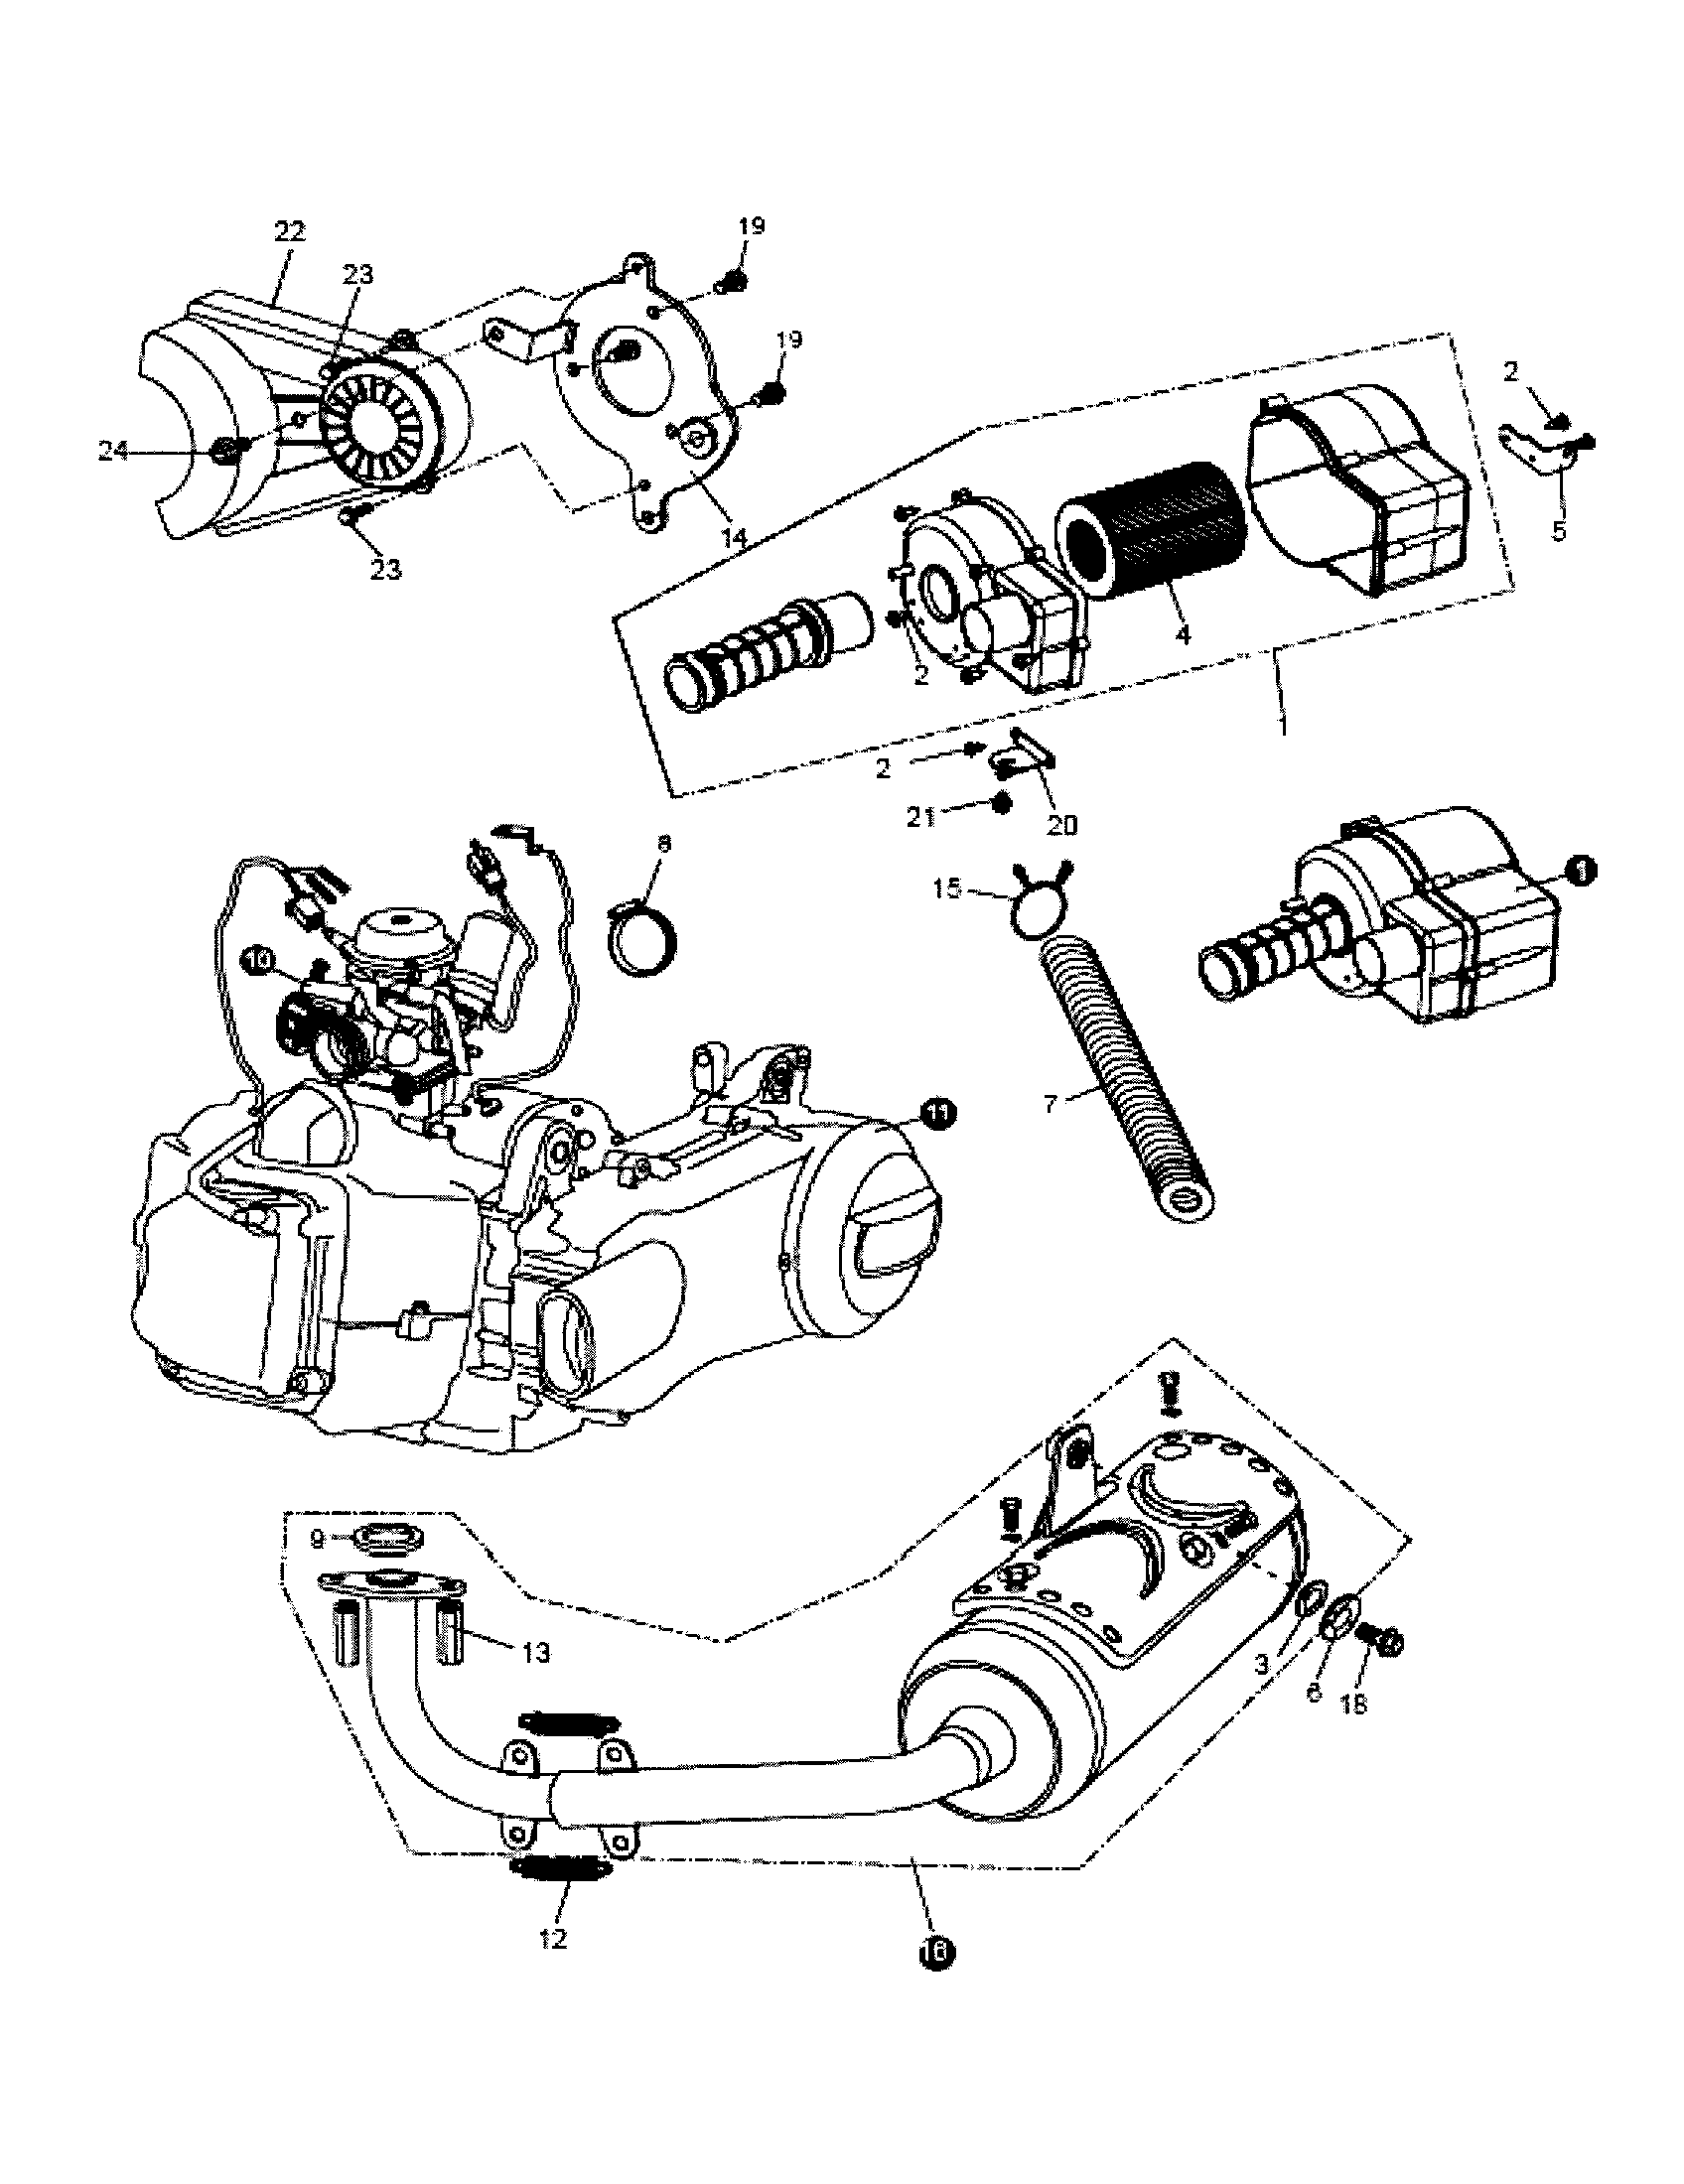 wiring diagram for sunl 50cc dirt bike